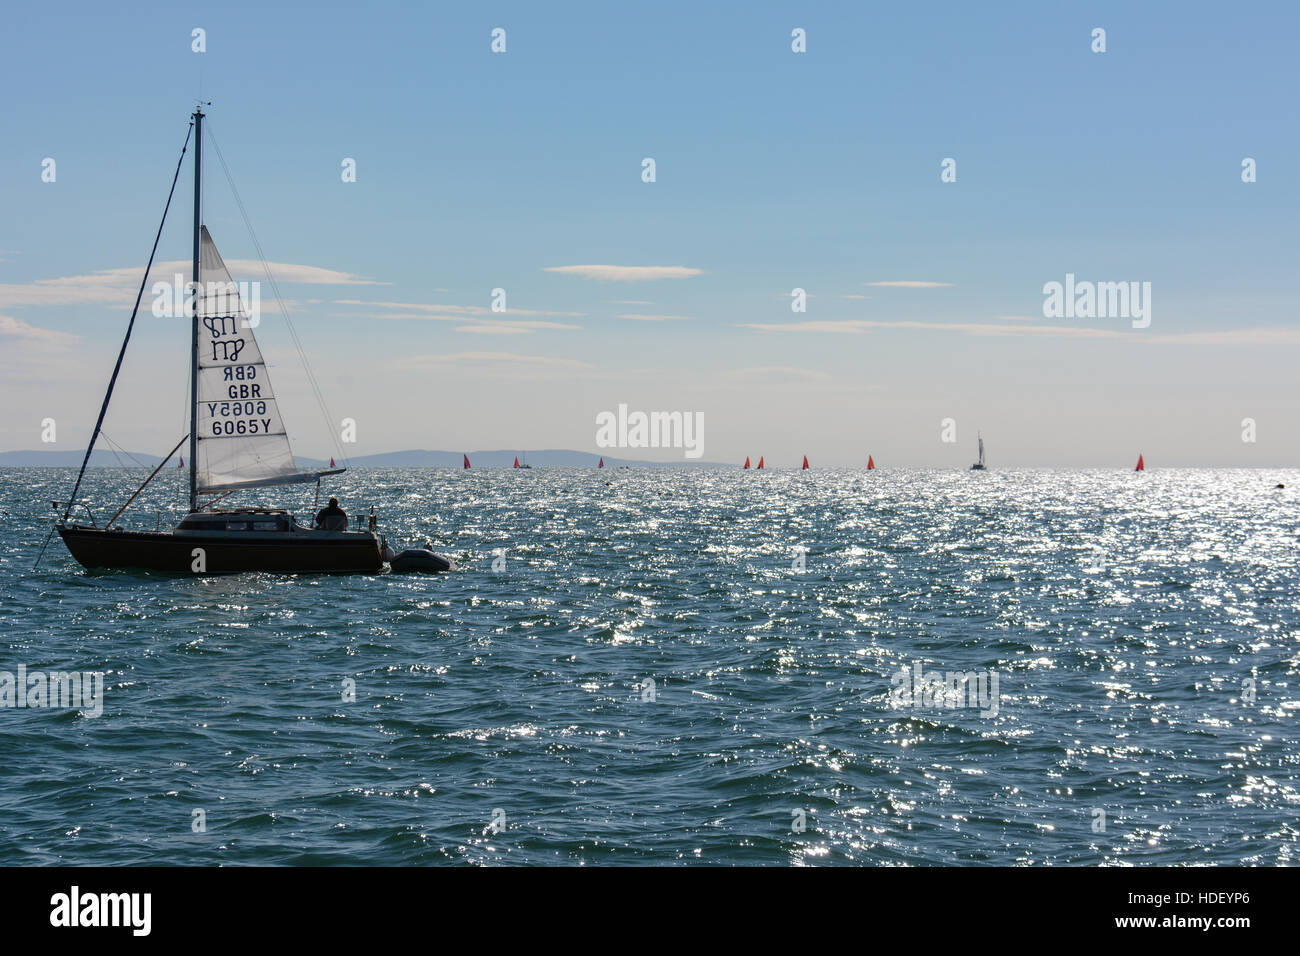 An anchored yacht with the mainsail partly raised as a steadying sail watches dinghy racing on a summers morning. - Stock Image